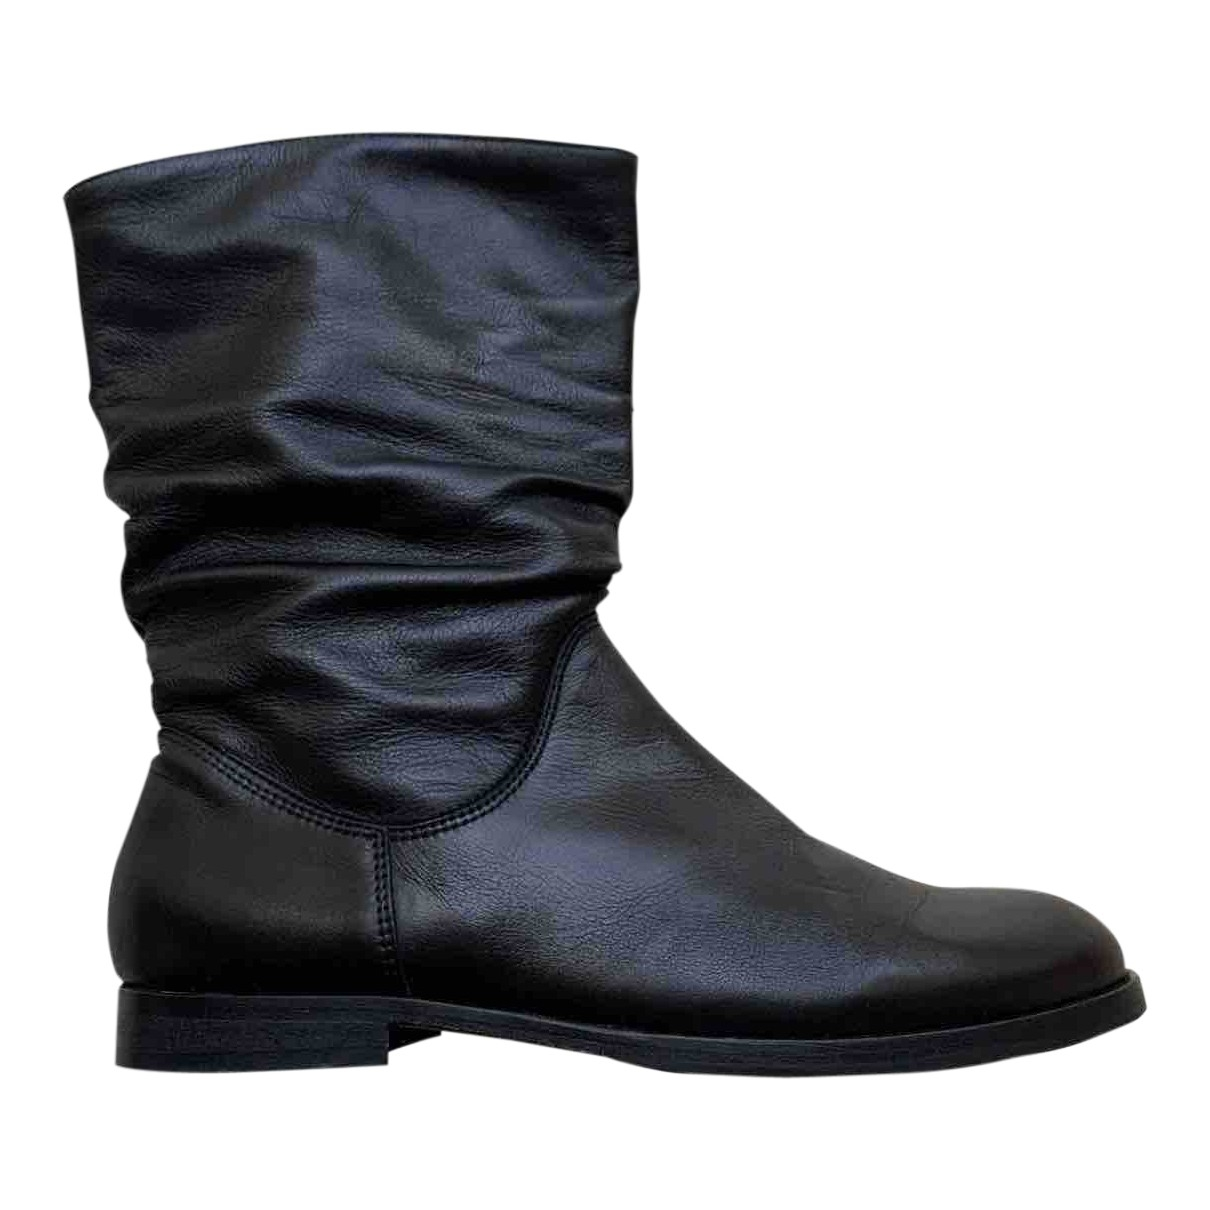 Gallucci \N Black Leather Boots for Women 36 EU